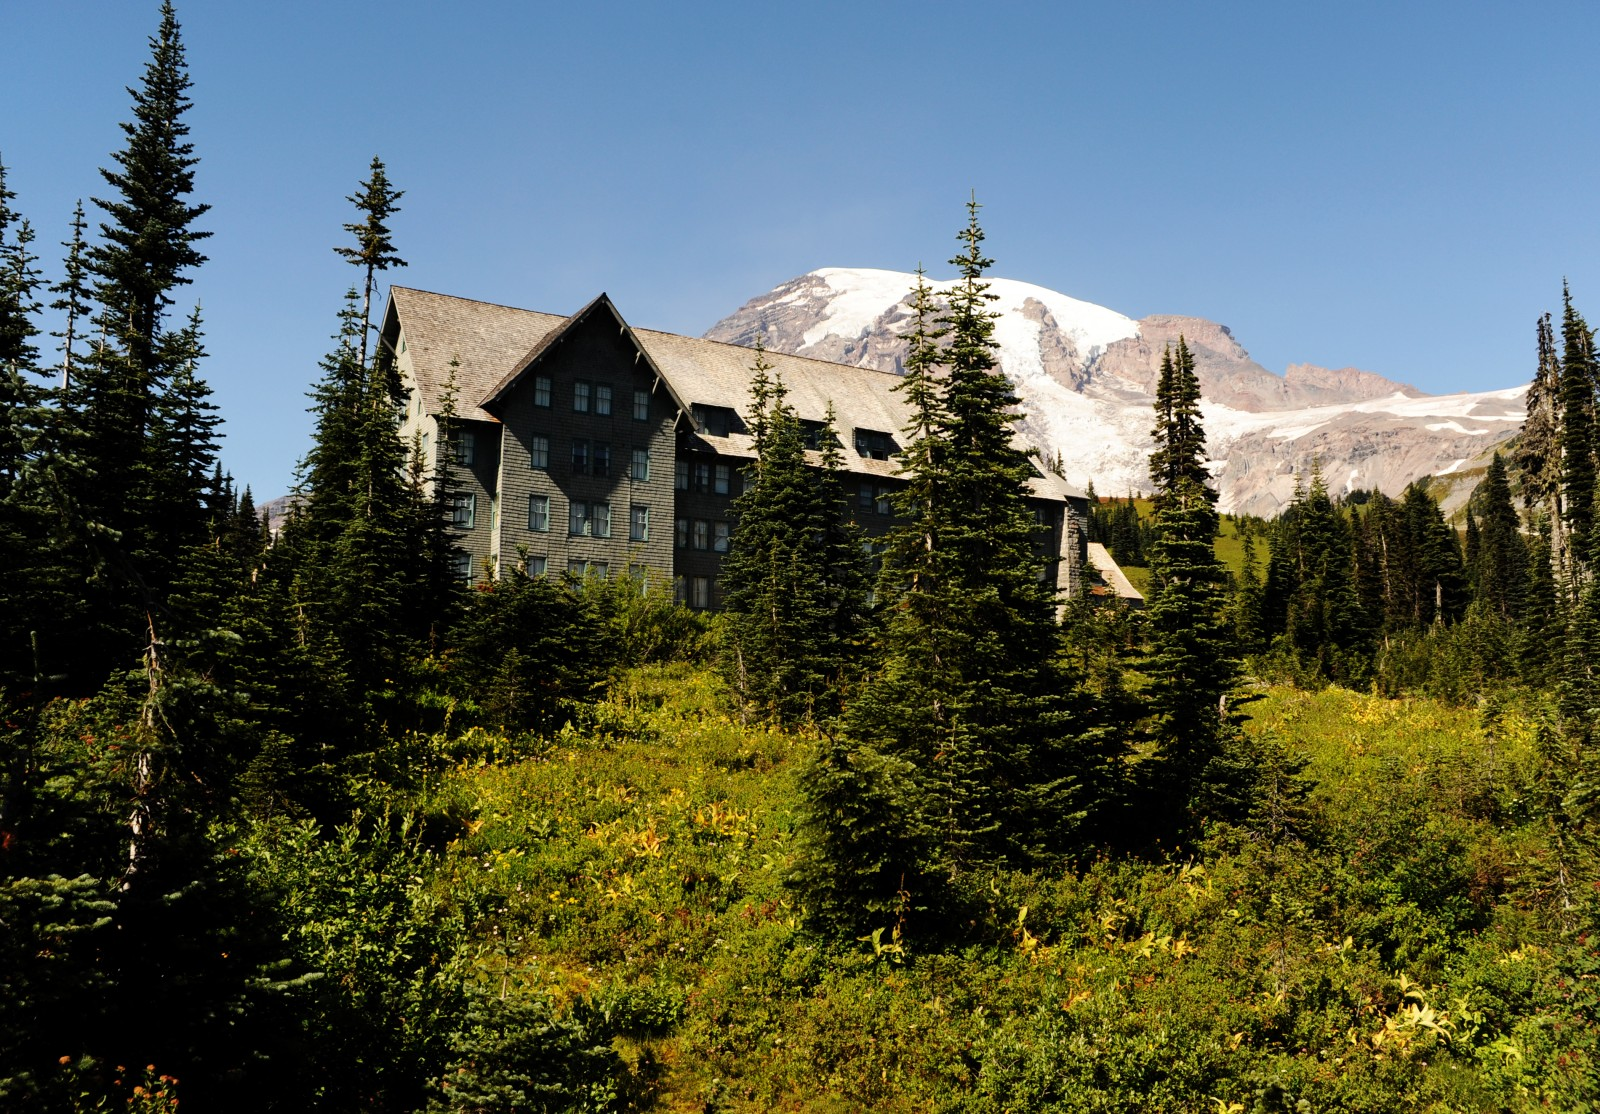 The Paradise Inn nestled below the top of Mt. Rainier